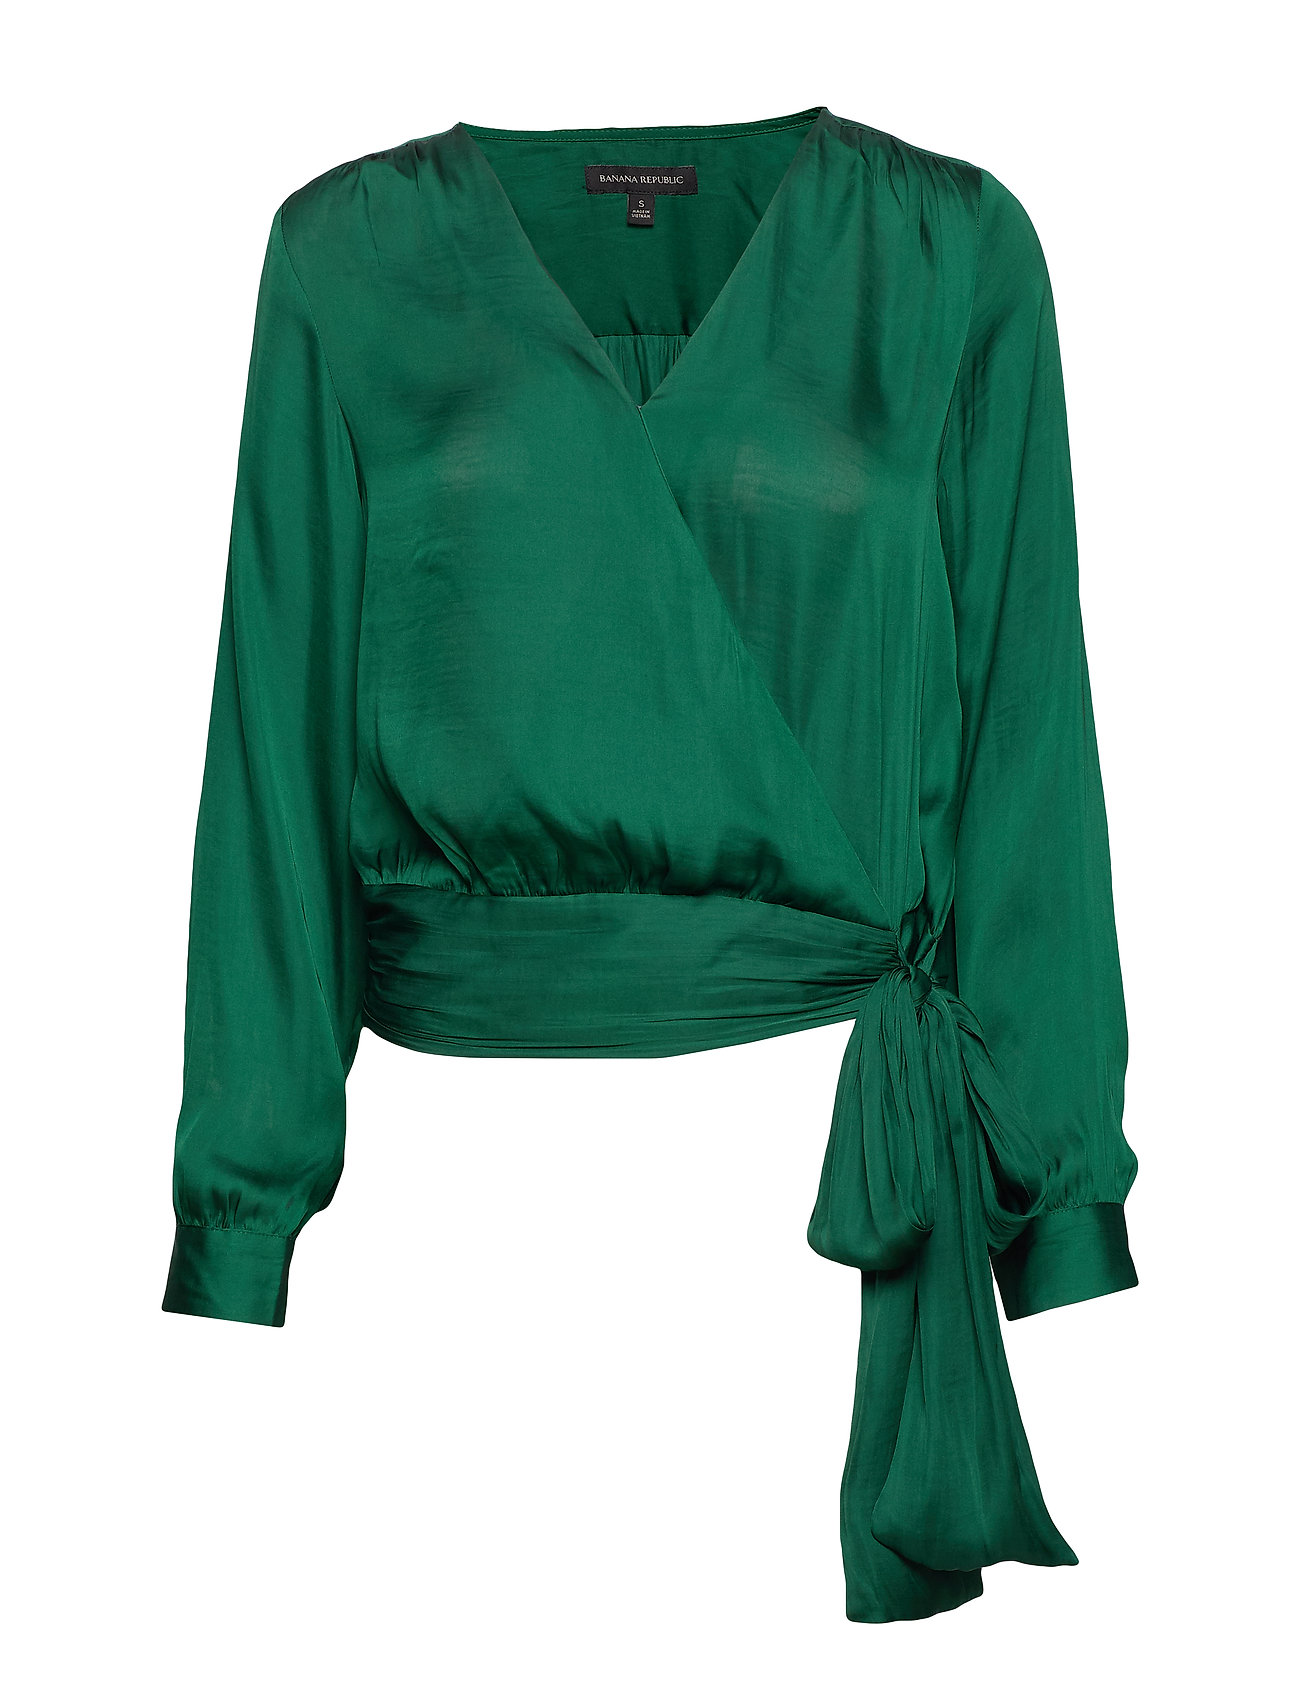 Banana Republic Soft Satin Puff-Sleeve Top - JEWELED GREEN